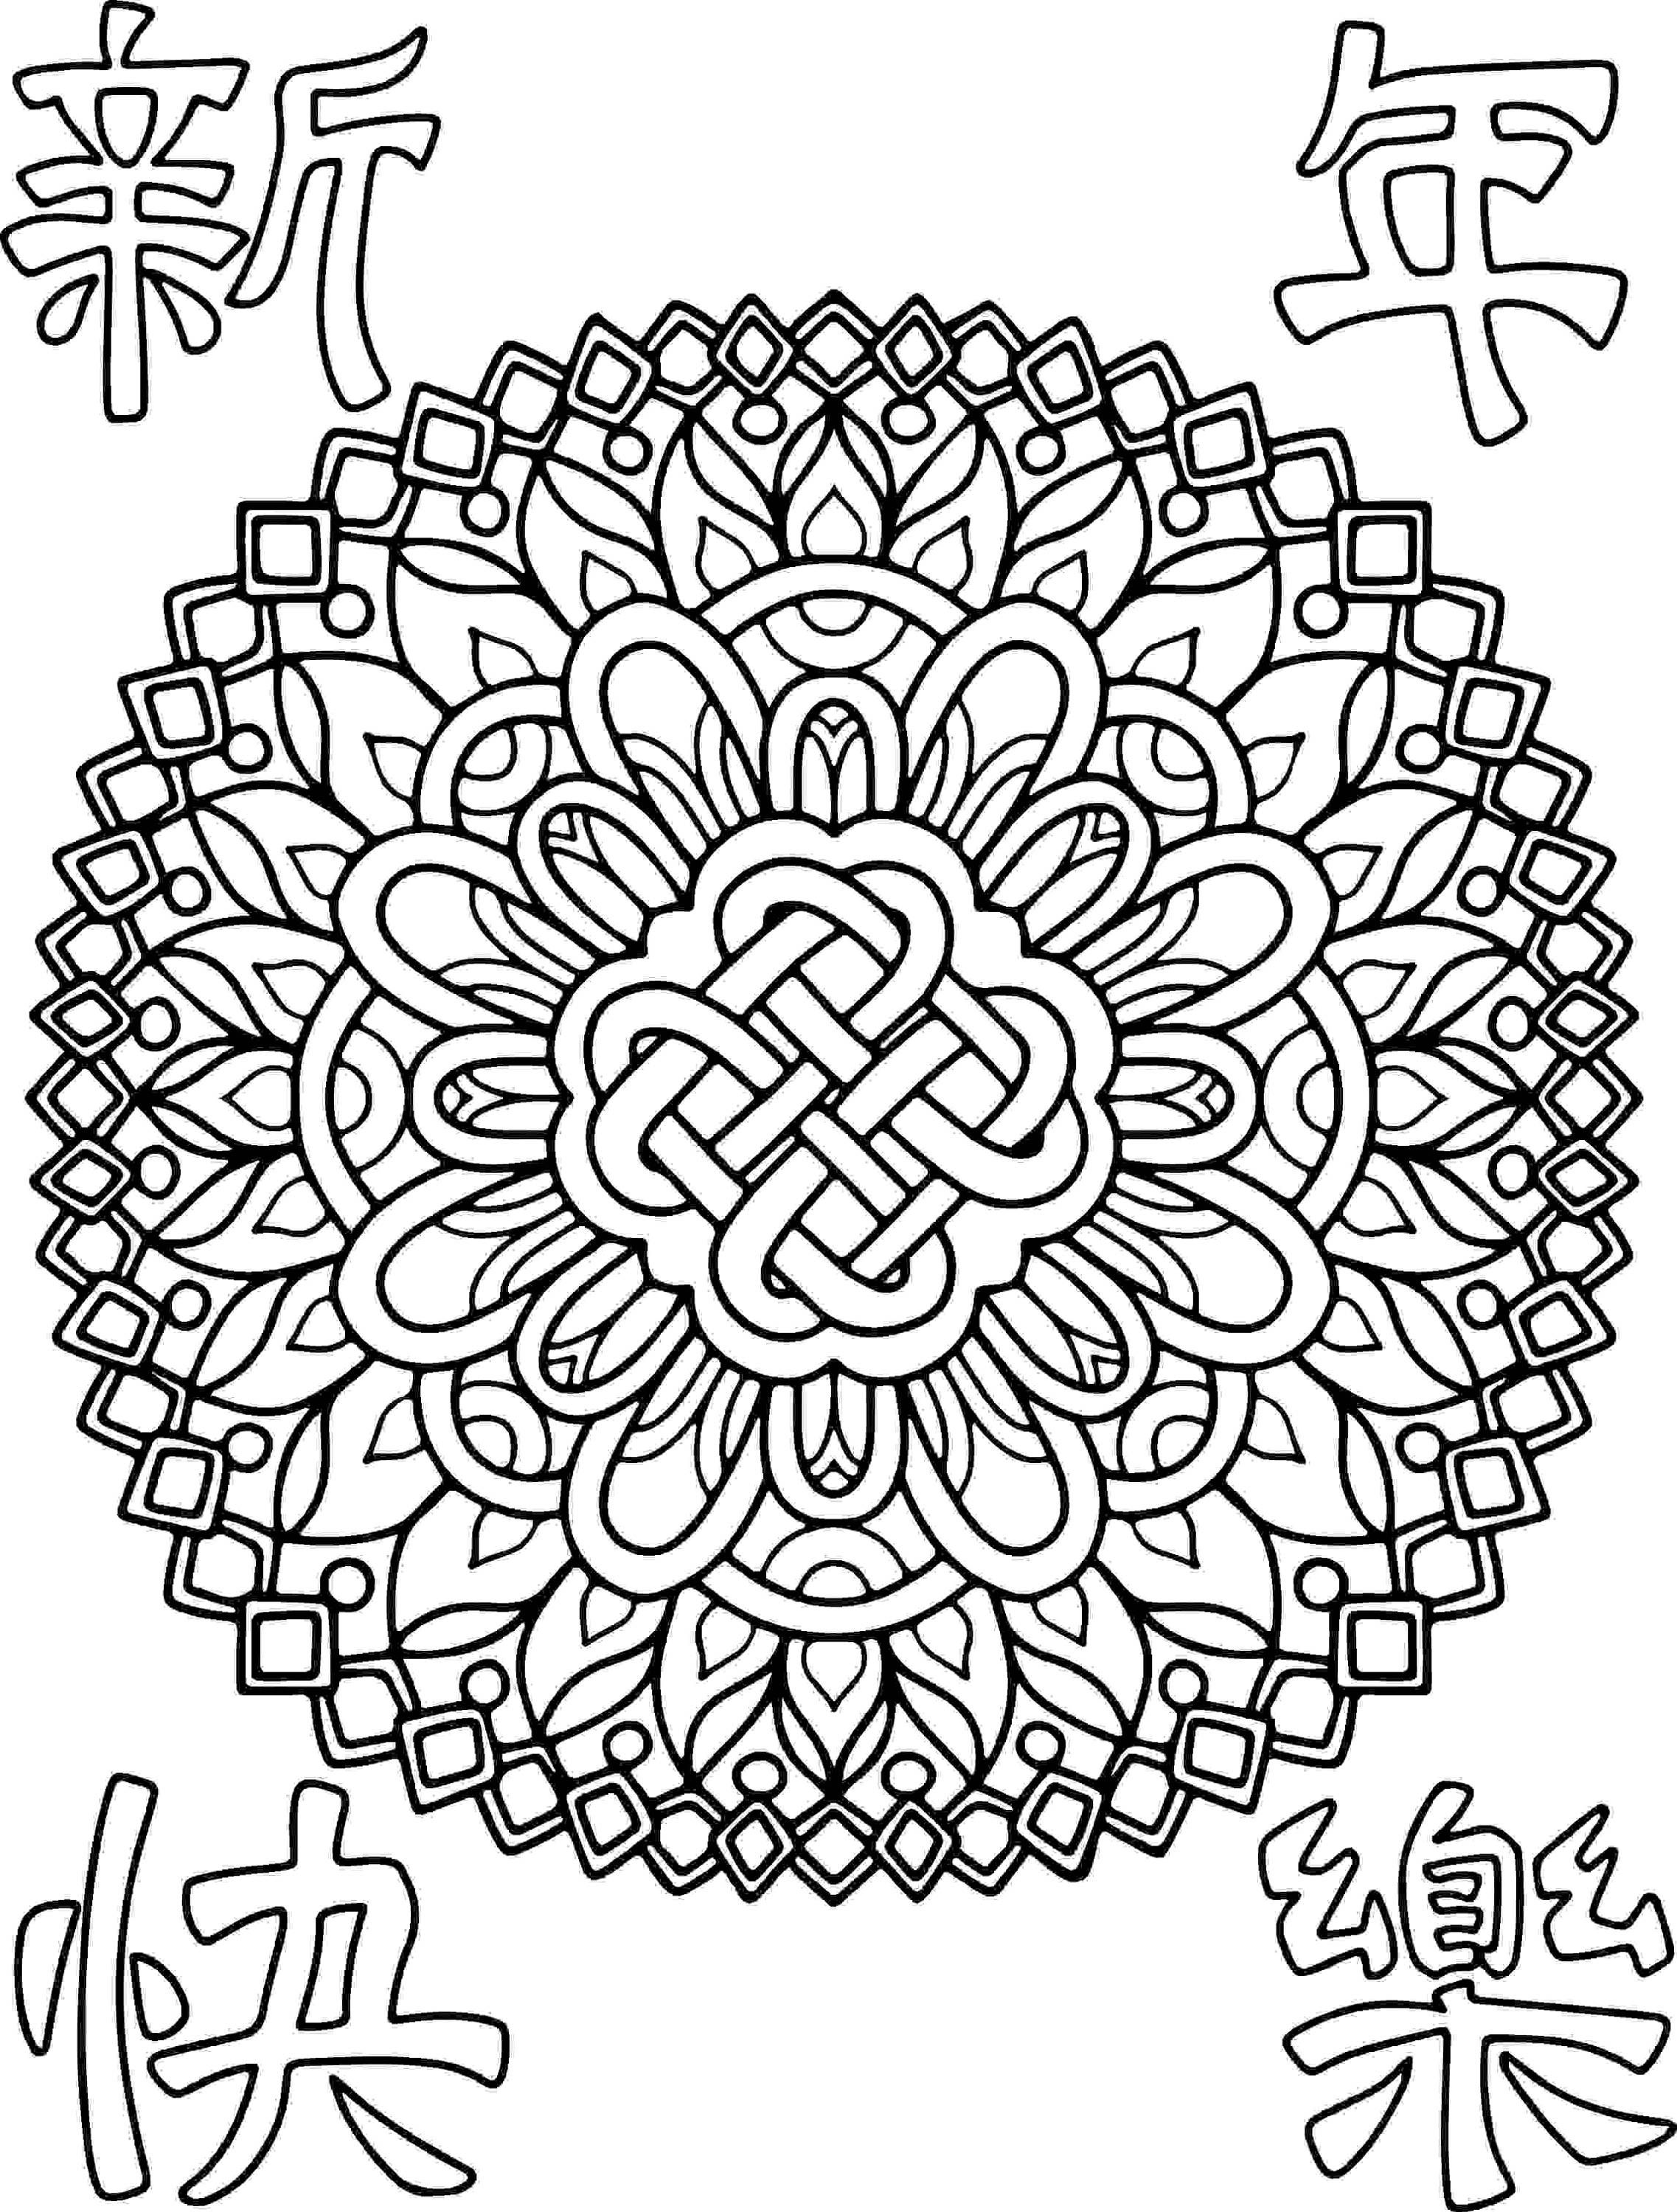 Free Printable Mandala Coloring Page Frozen Coloring Pages